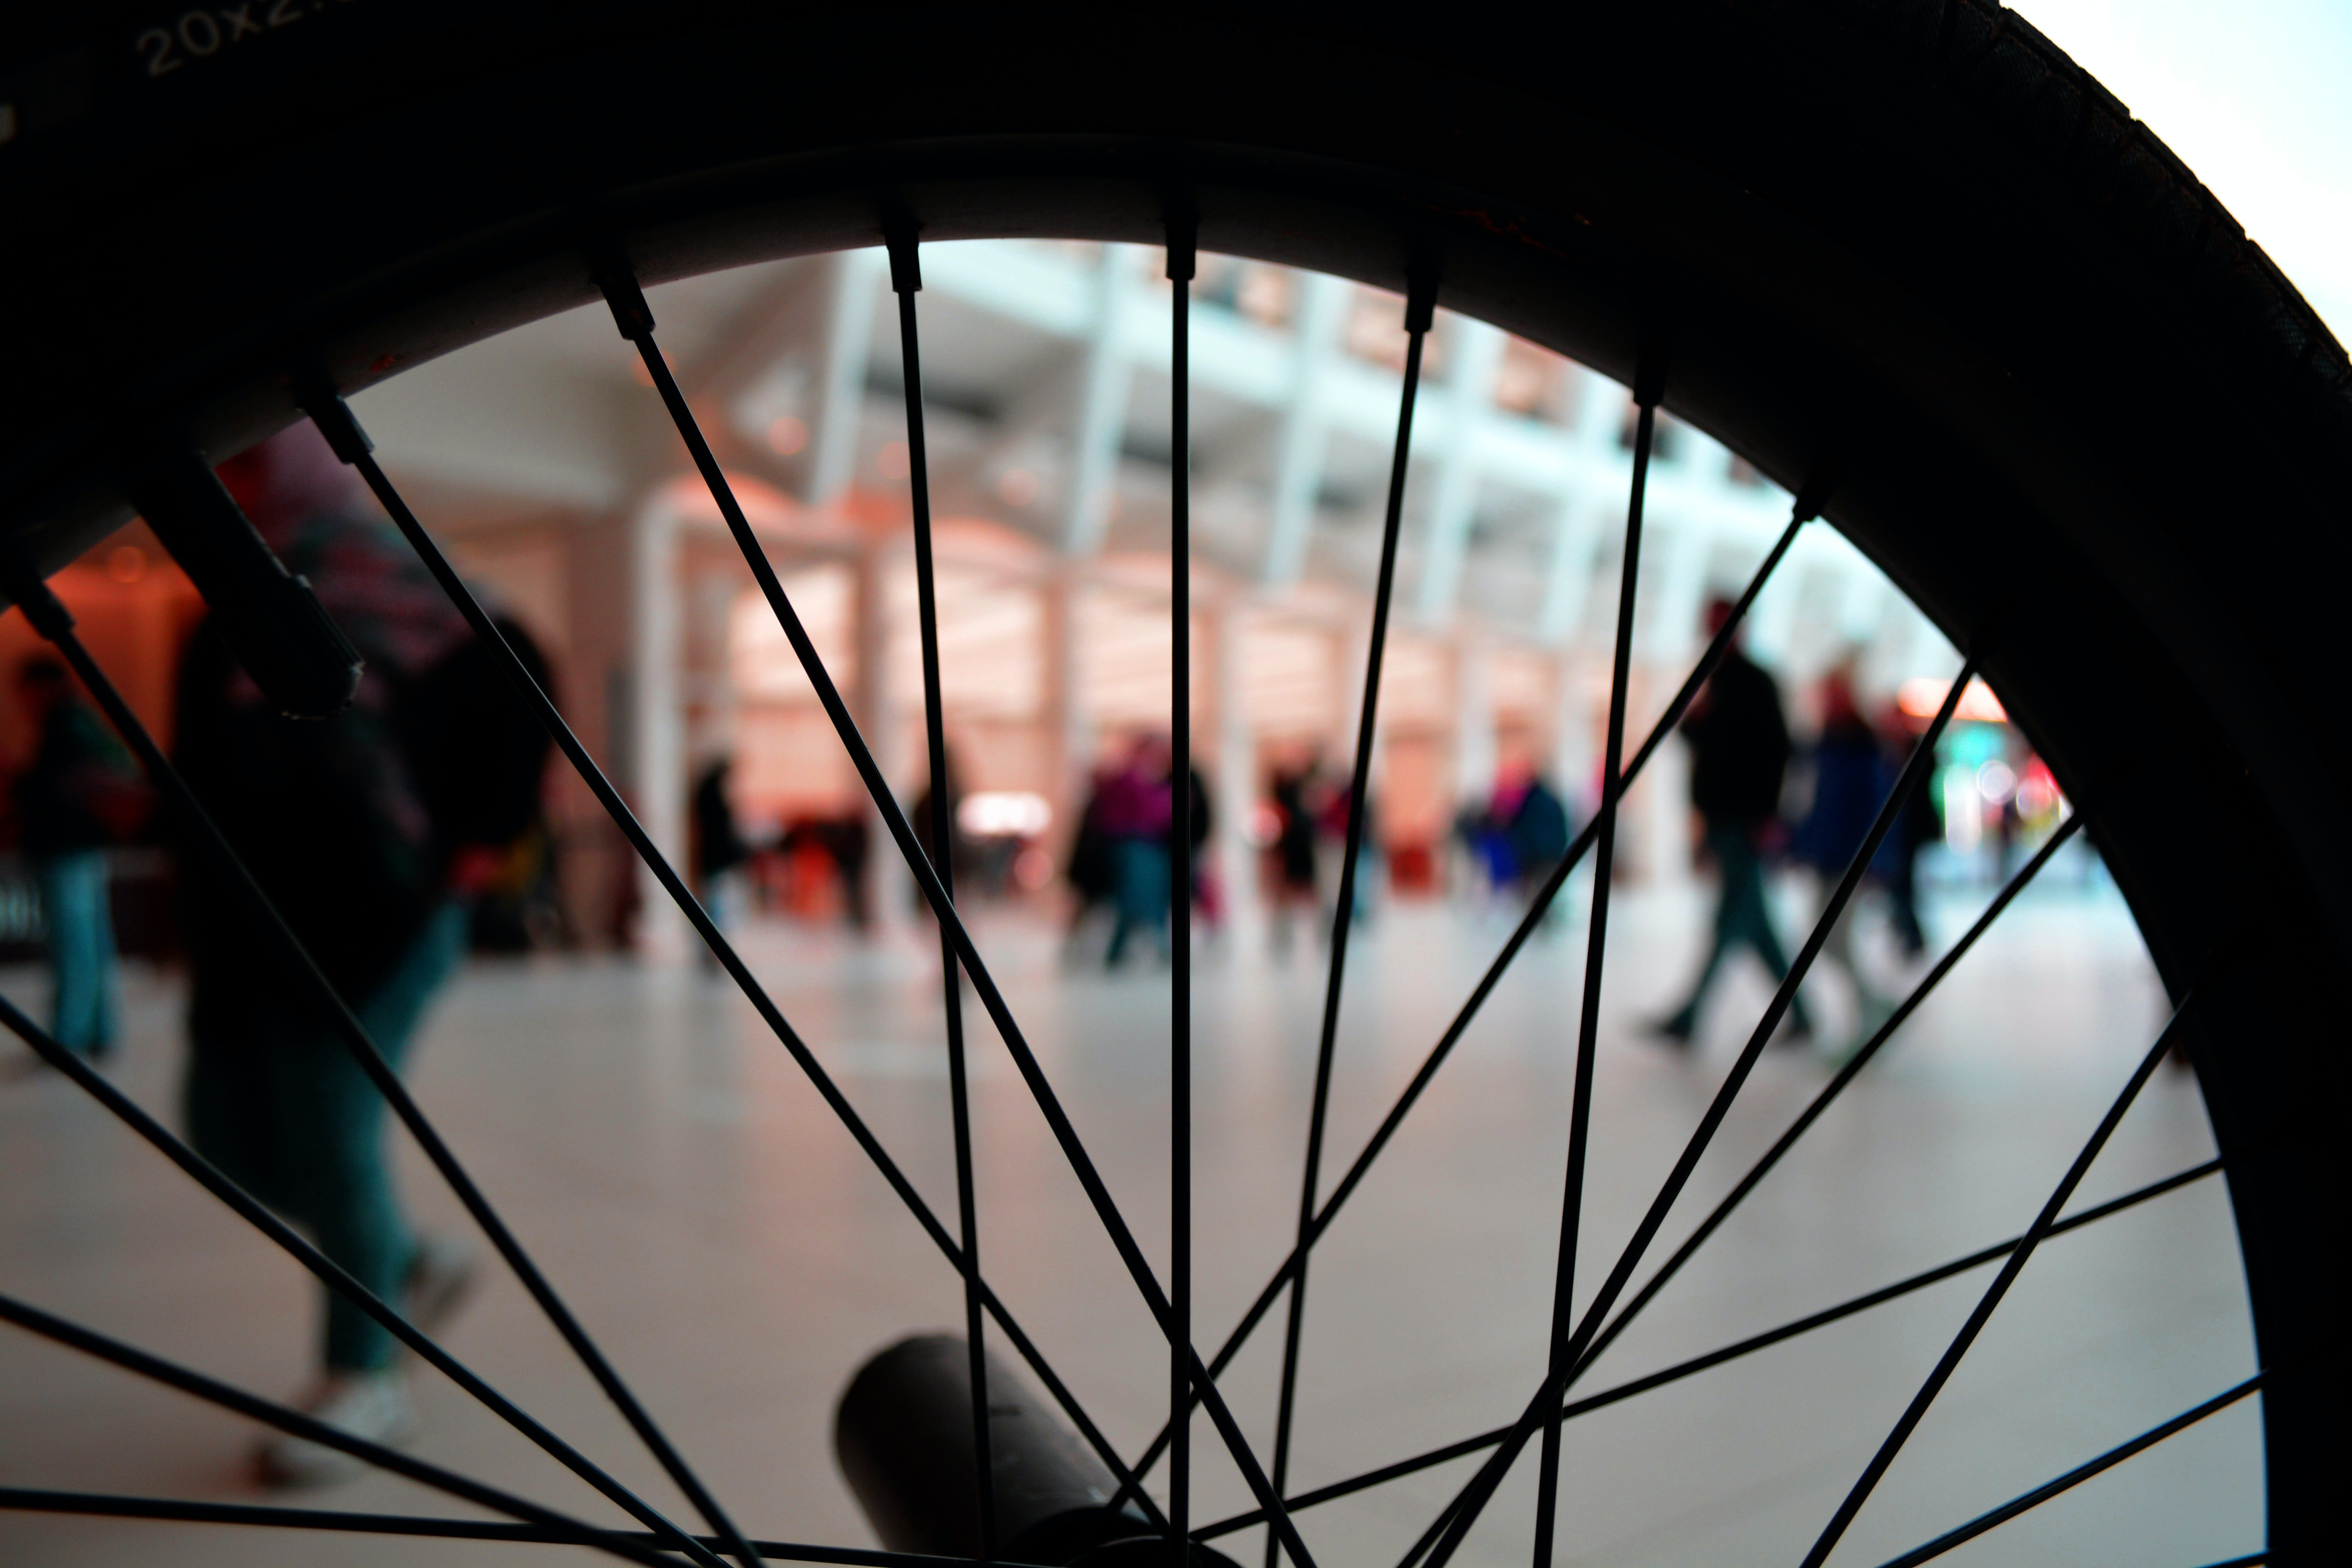 Silhouette of Bicycle Wheel